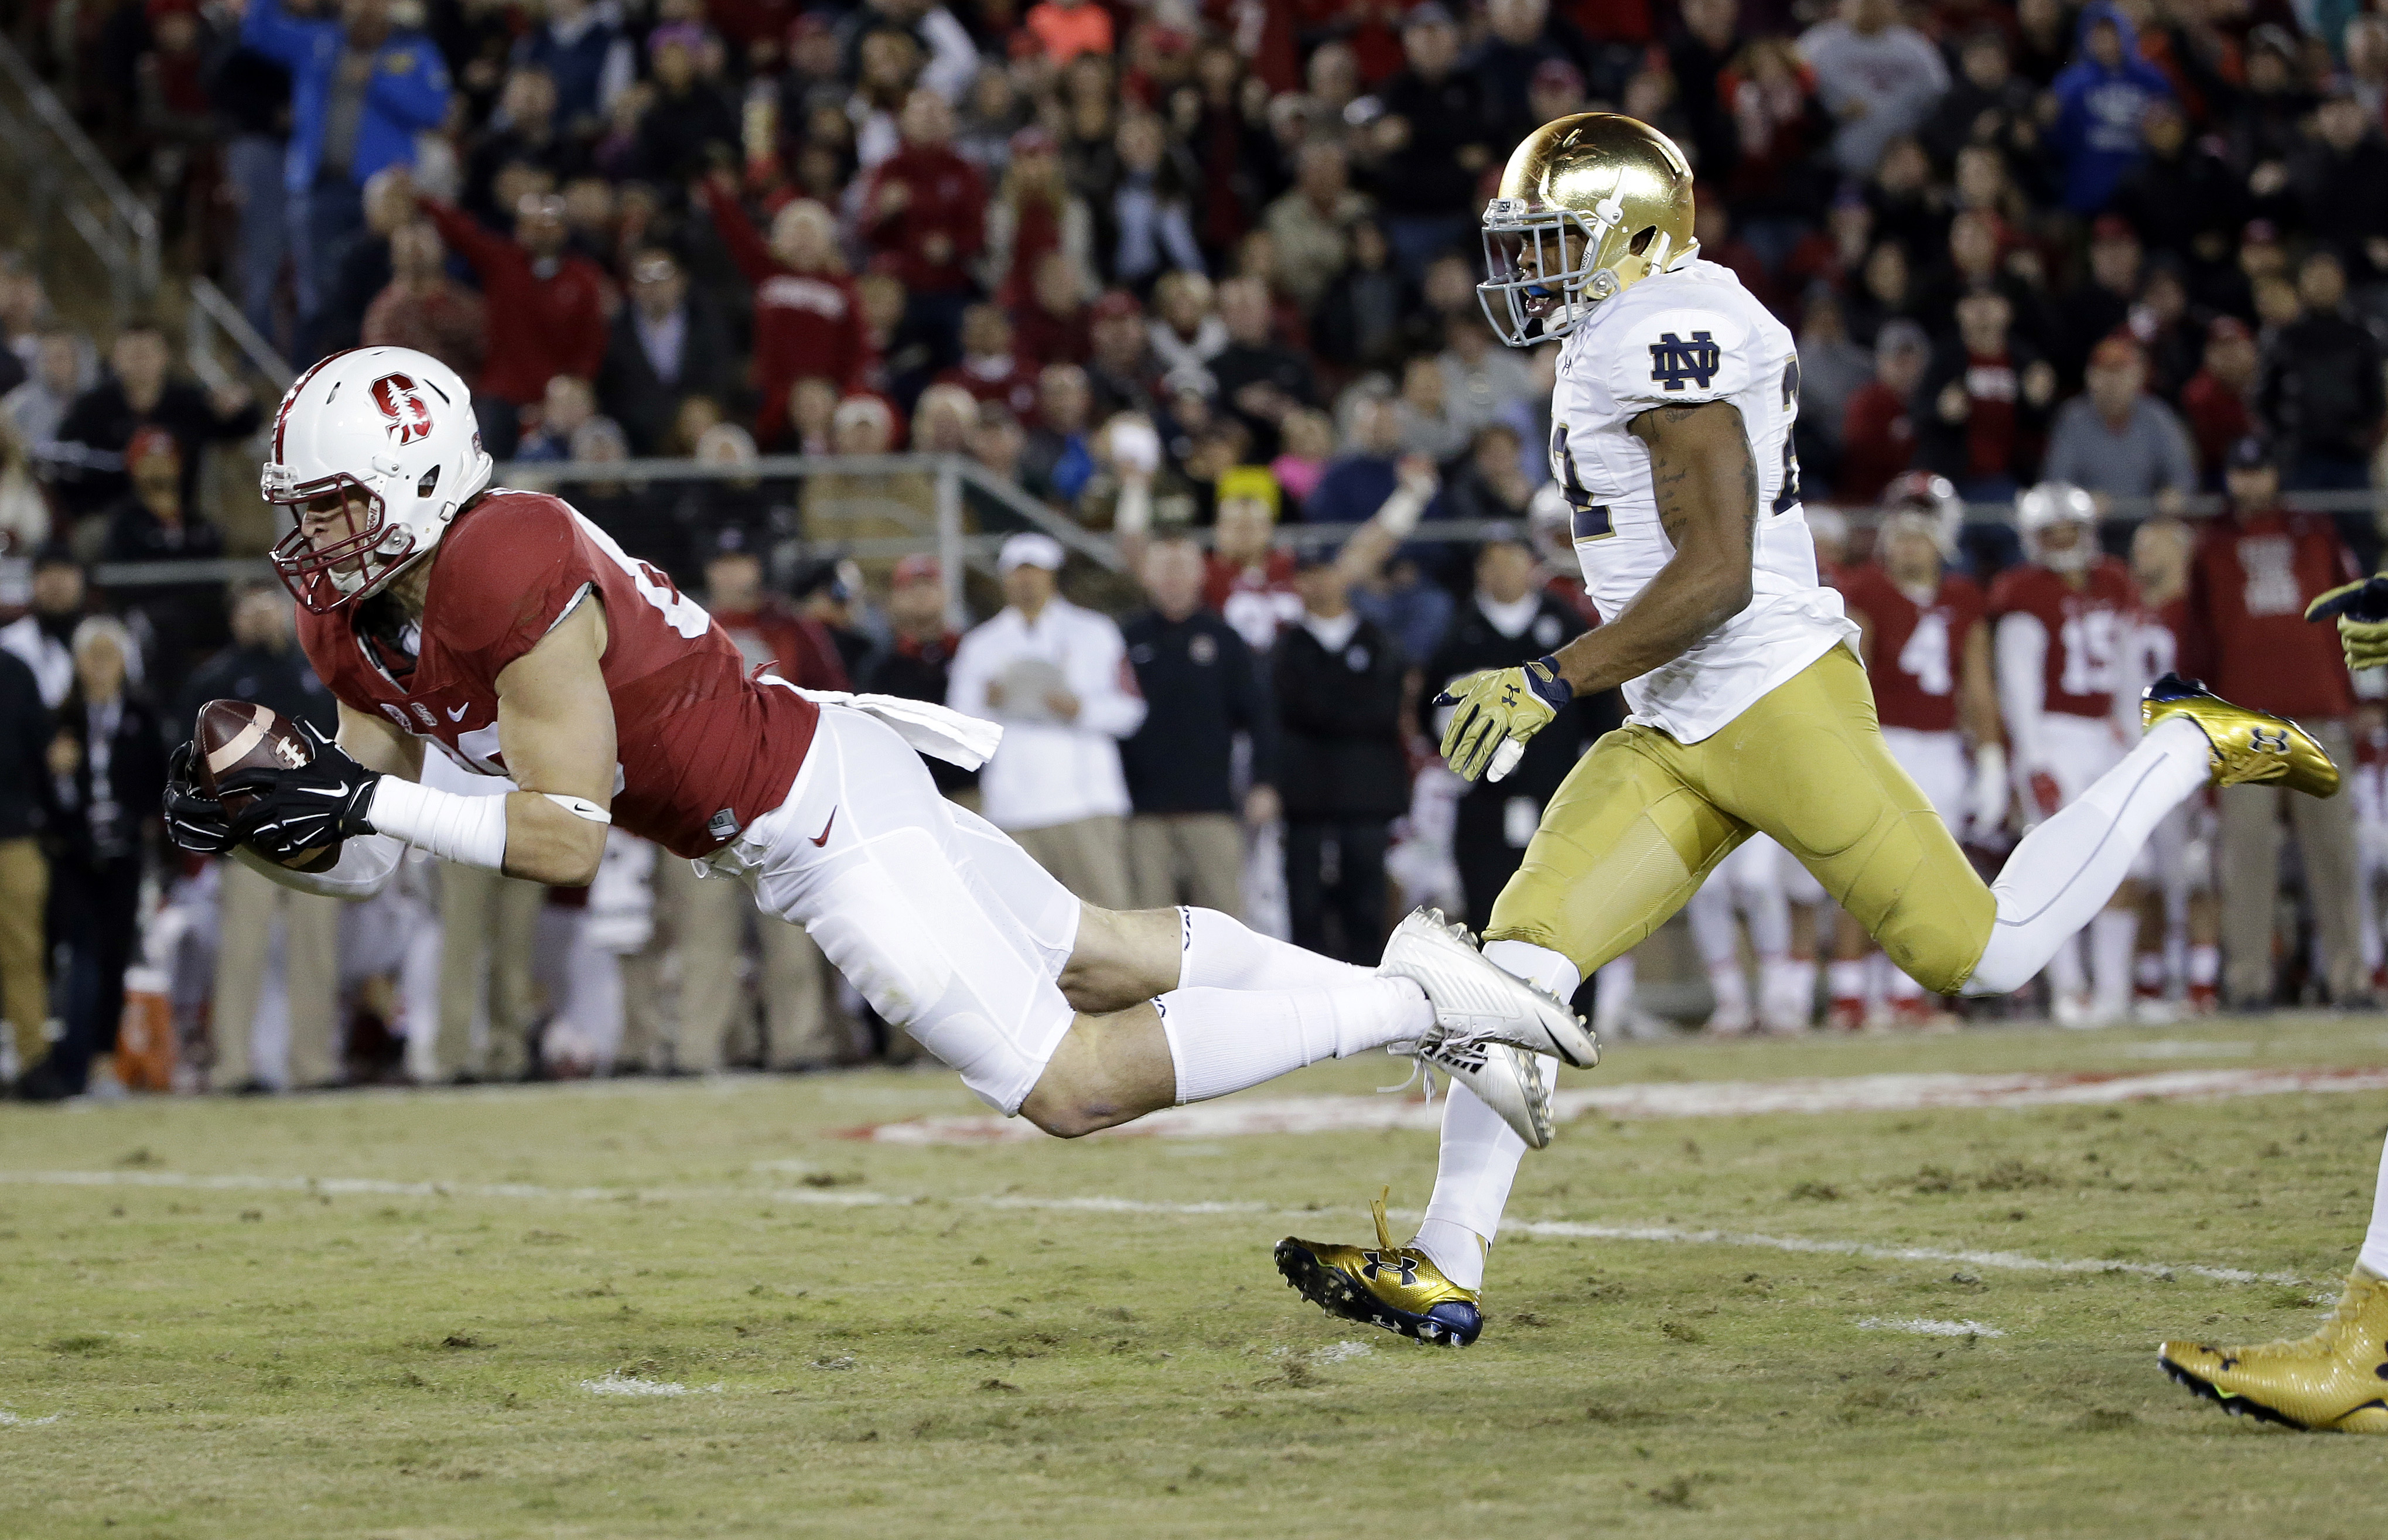 Stanford wide receiver Devon Cajuste, left, makes a catch next to Notre Dame safety Elijah Shumate during the first half of an NCAA college football game Saturday, Nov. 28, 2015, in Stanford, Calif. (AP Photo/Marcio Jose Sanchez)